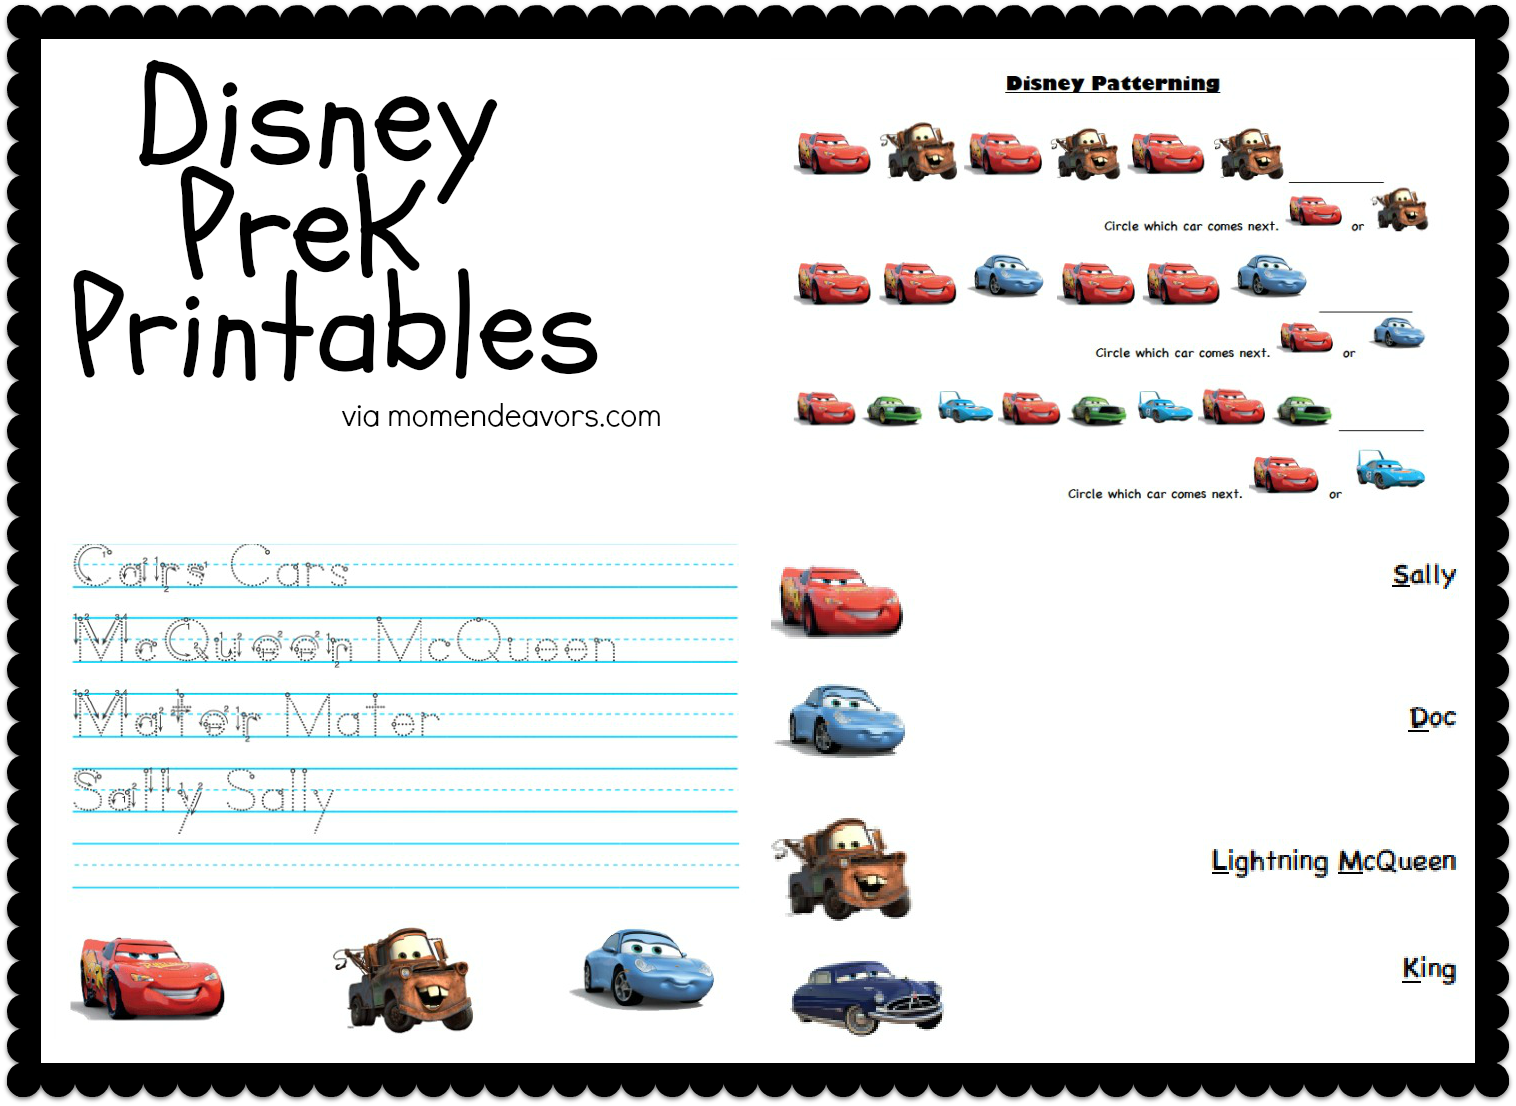 Disney Pixar Cars Prek Printable Activity Sheets Disney